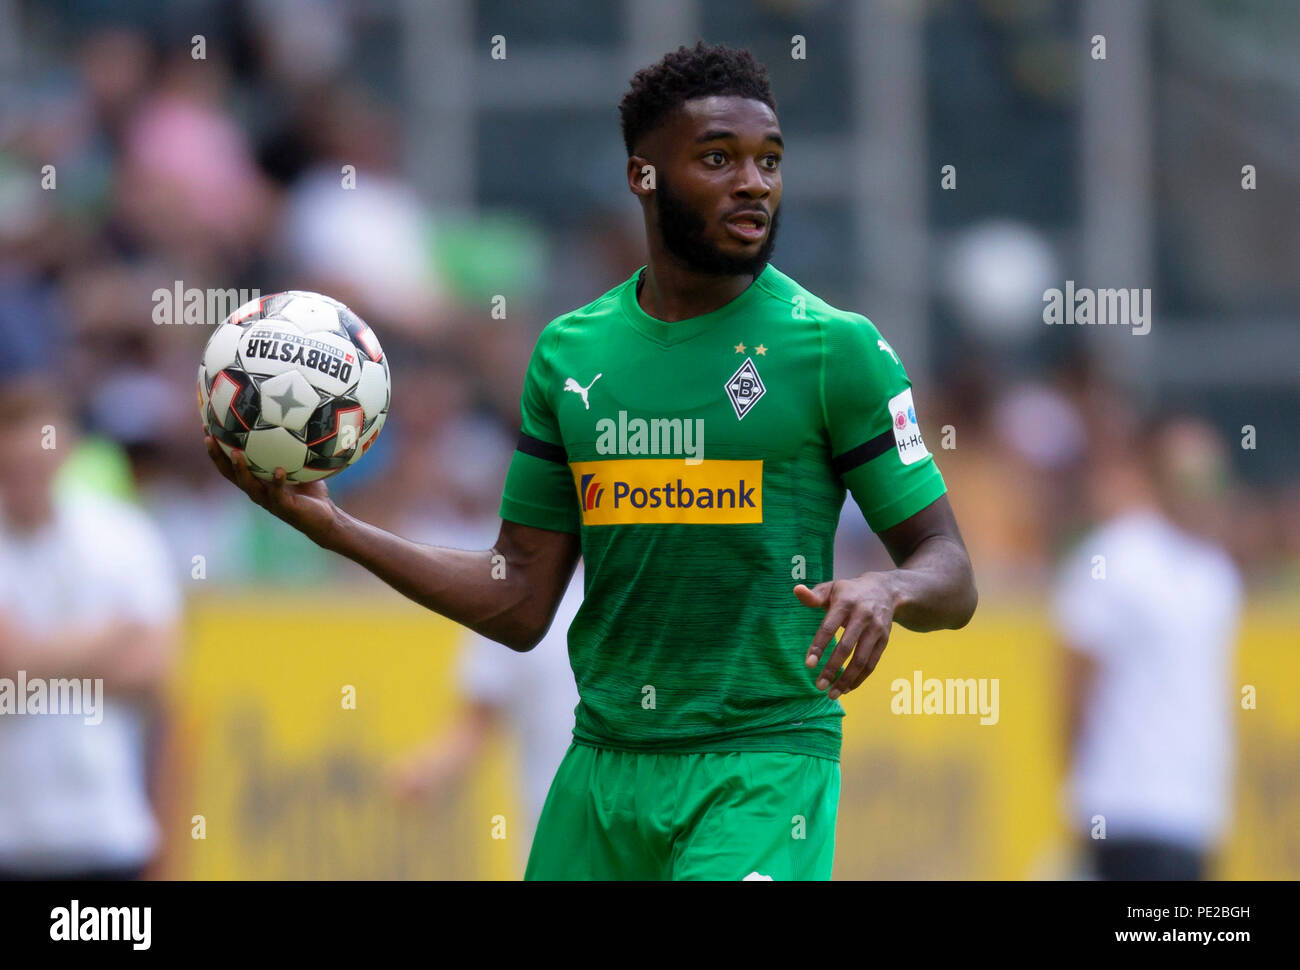 Moenchengladbach, Germany August 12 2018, friendly match, Borussia Moenchengladbach vs FC Wegberg-Beeck: Mandela Egbo (BMG) schaut.                Credit: Juergen Schwarz/Alamy Live News - Stock Image